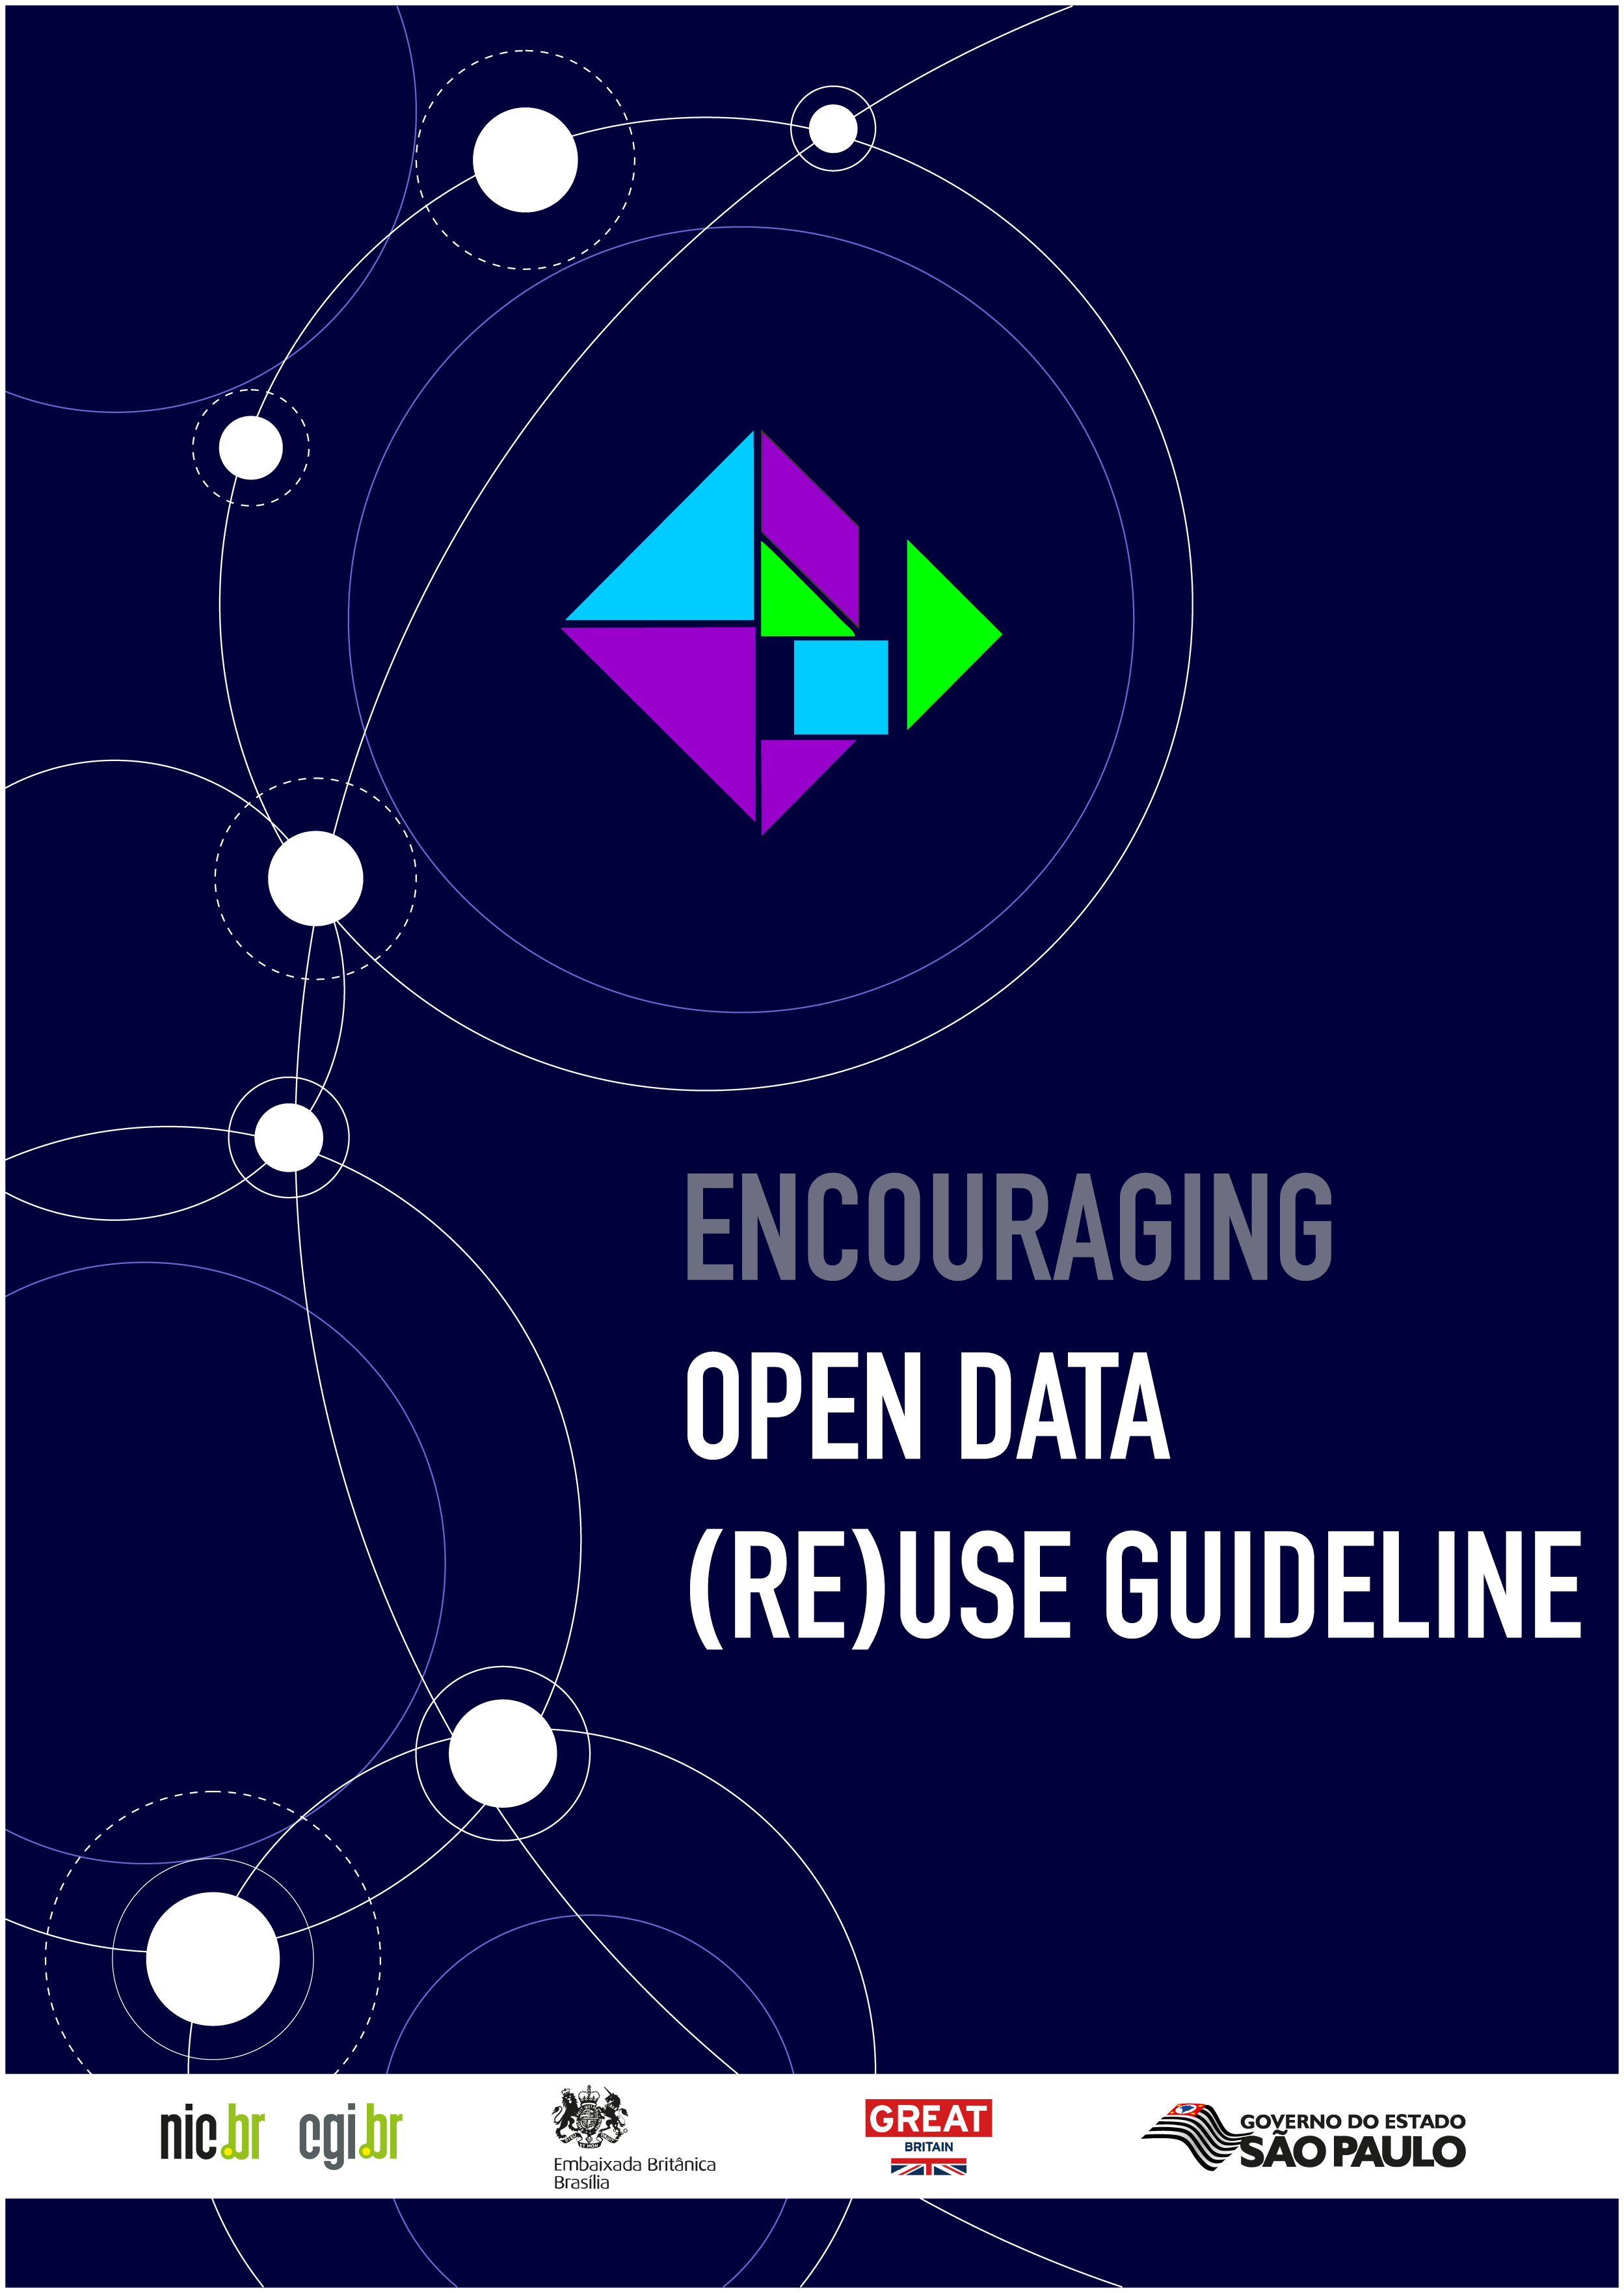 Encouraging Open Data Reuse Guideline